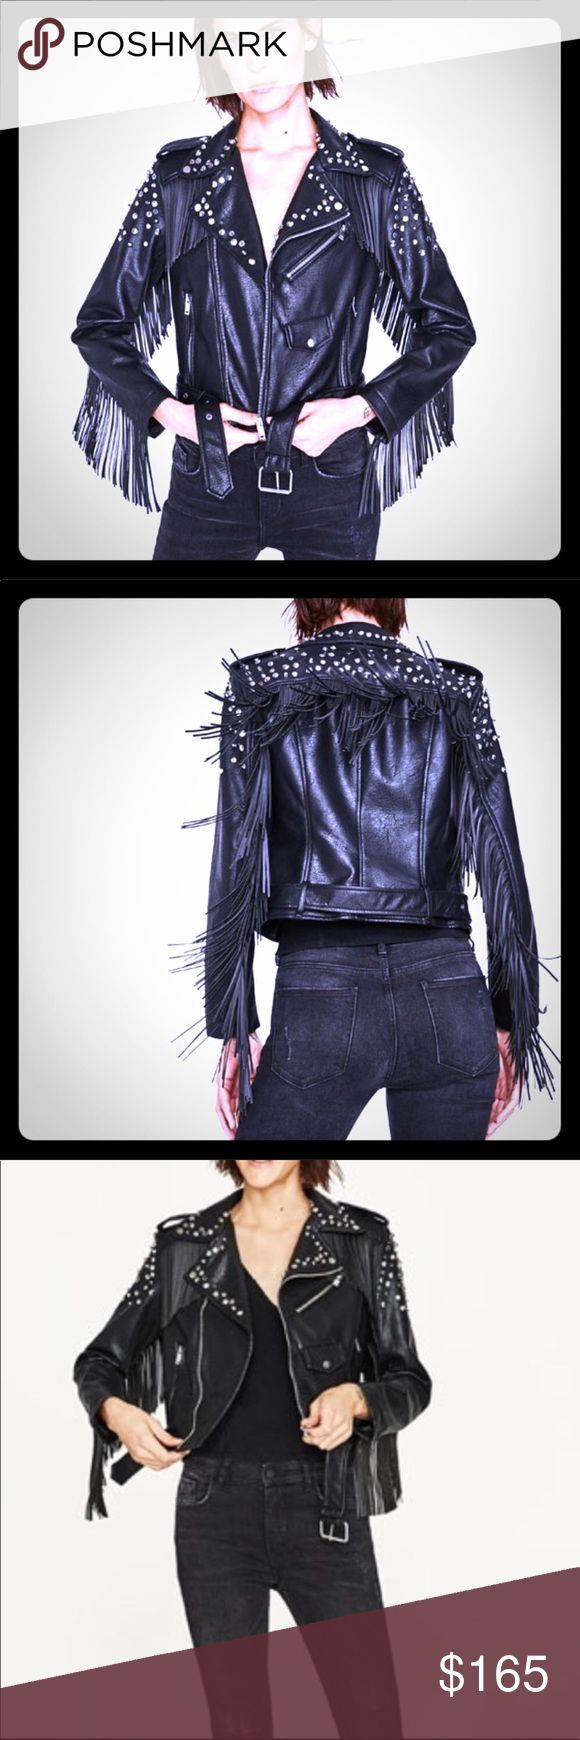 Zara fringed studded leather Moto biker jacket Vegan